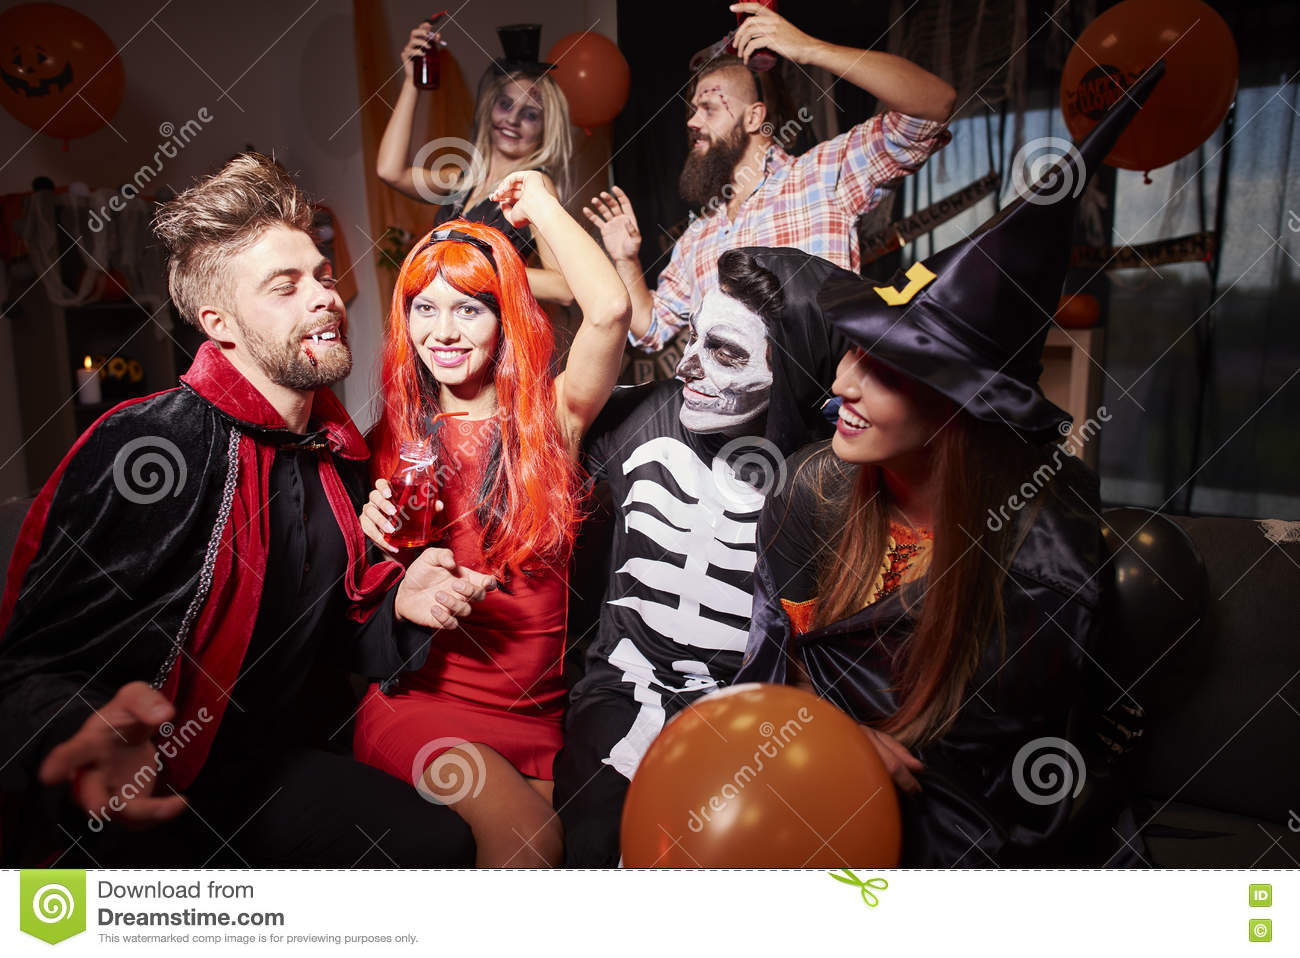 Halloween Costumes For 4 Friends.Halloween Party Stock Image Image Of Costume Nightlife